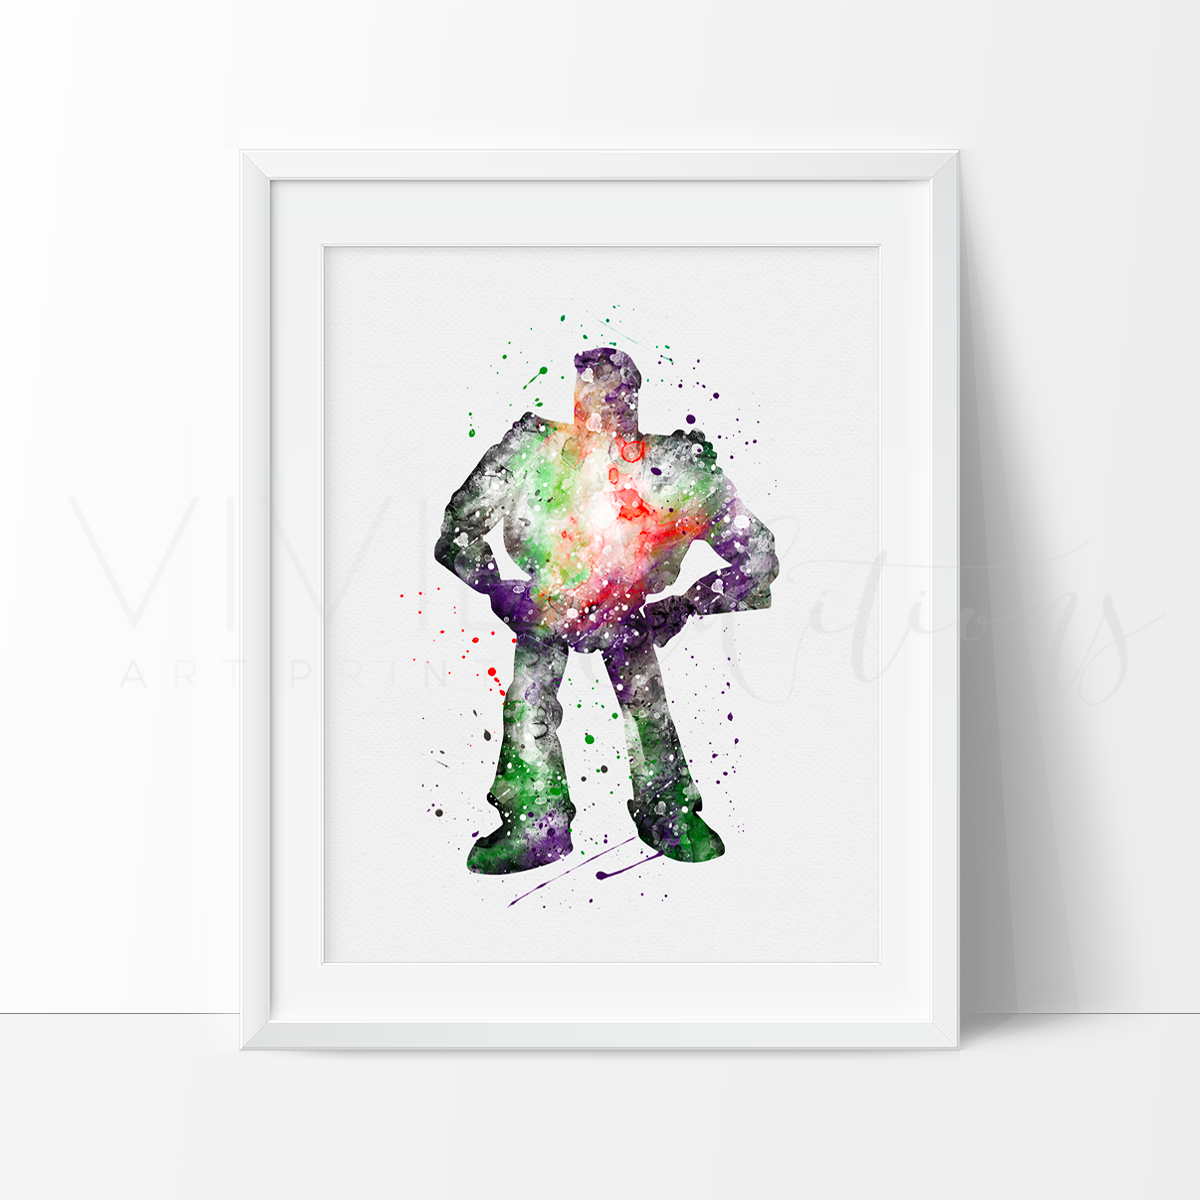 Buzz Lightyear, Toy Story Watercolor Art Print Art Print - VIVIDEDITIONS